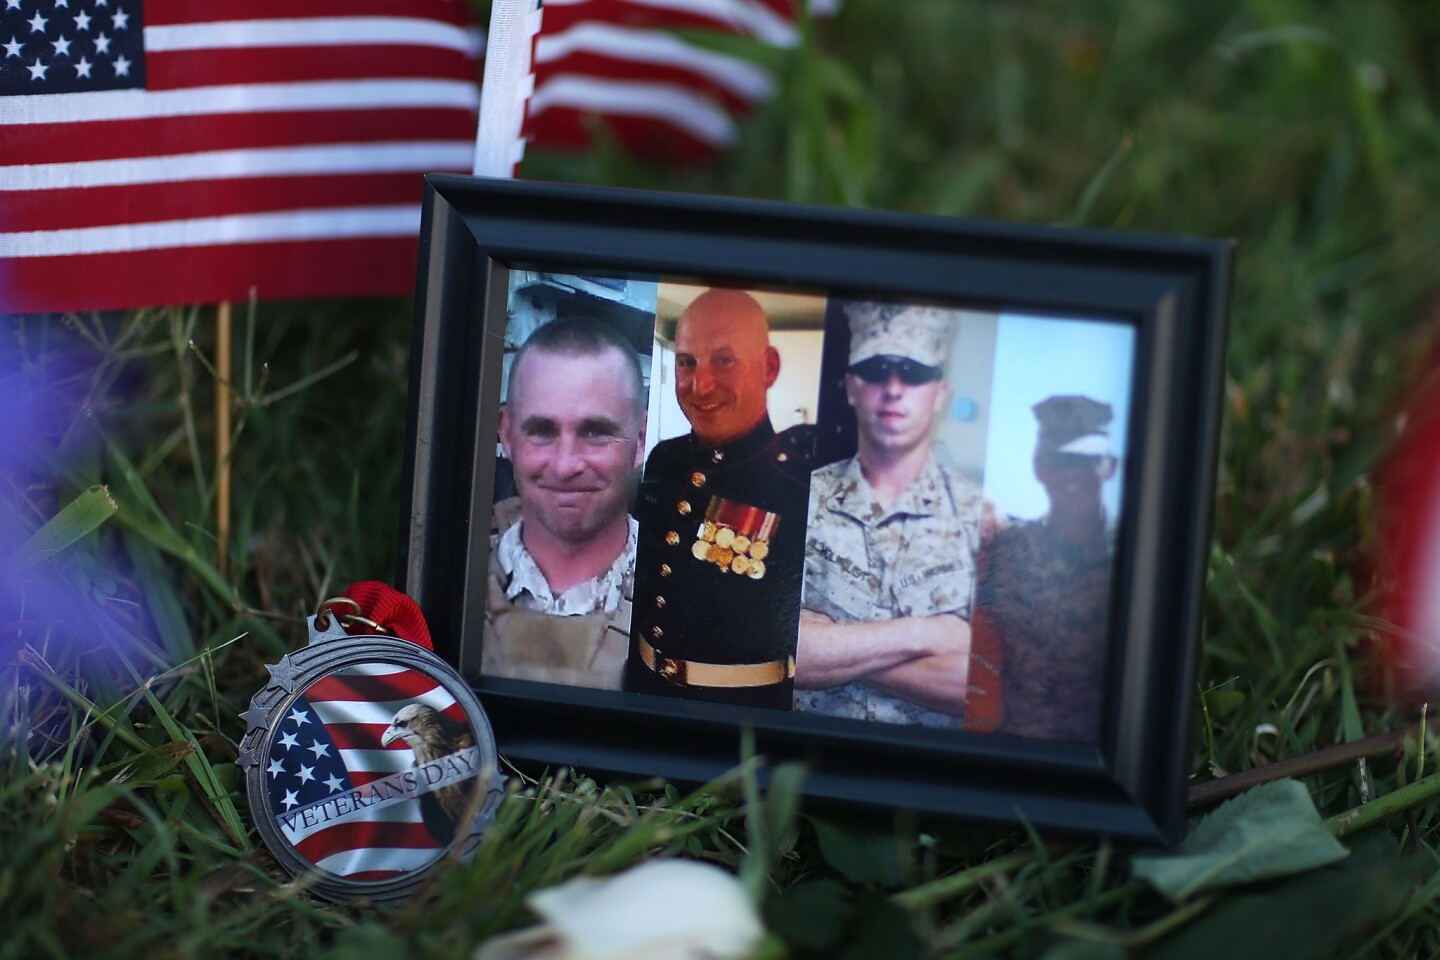 Photos of four slain Marines are placed at a makeshift memorial at a military recruiting center in Chattanooga, one of two military centers a gunman targeted. A fifth victim, a Navy sailor, has also died.